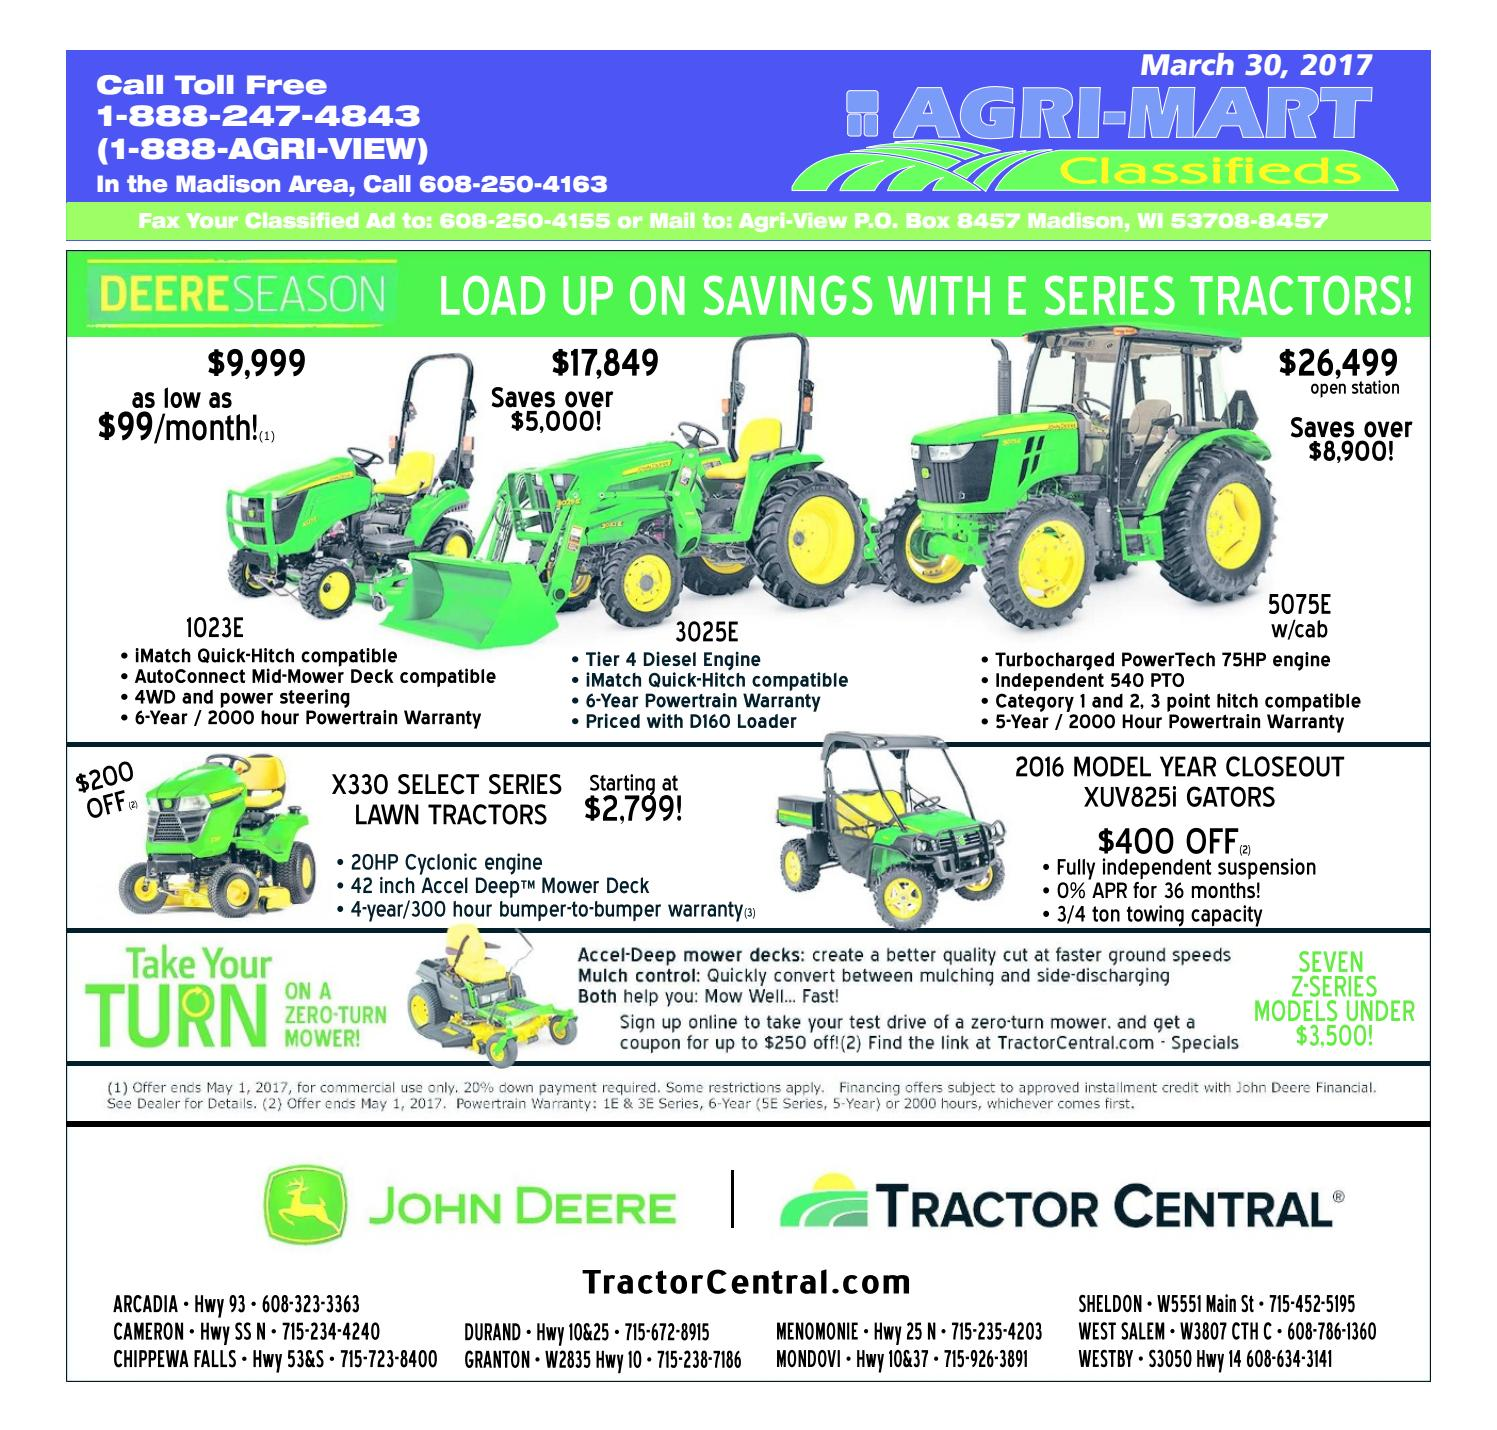 March 30, 2017 Agri-Mart by Madison.com - issuu